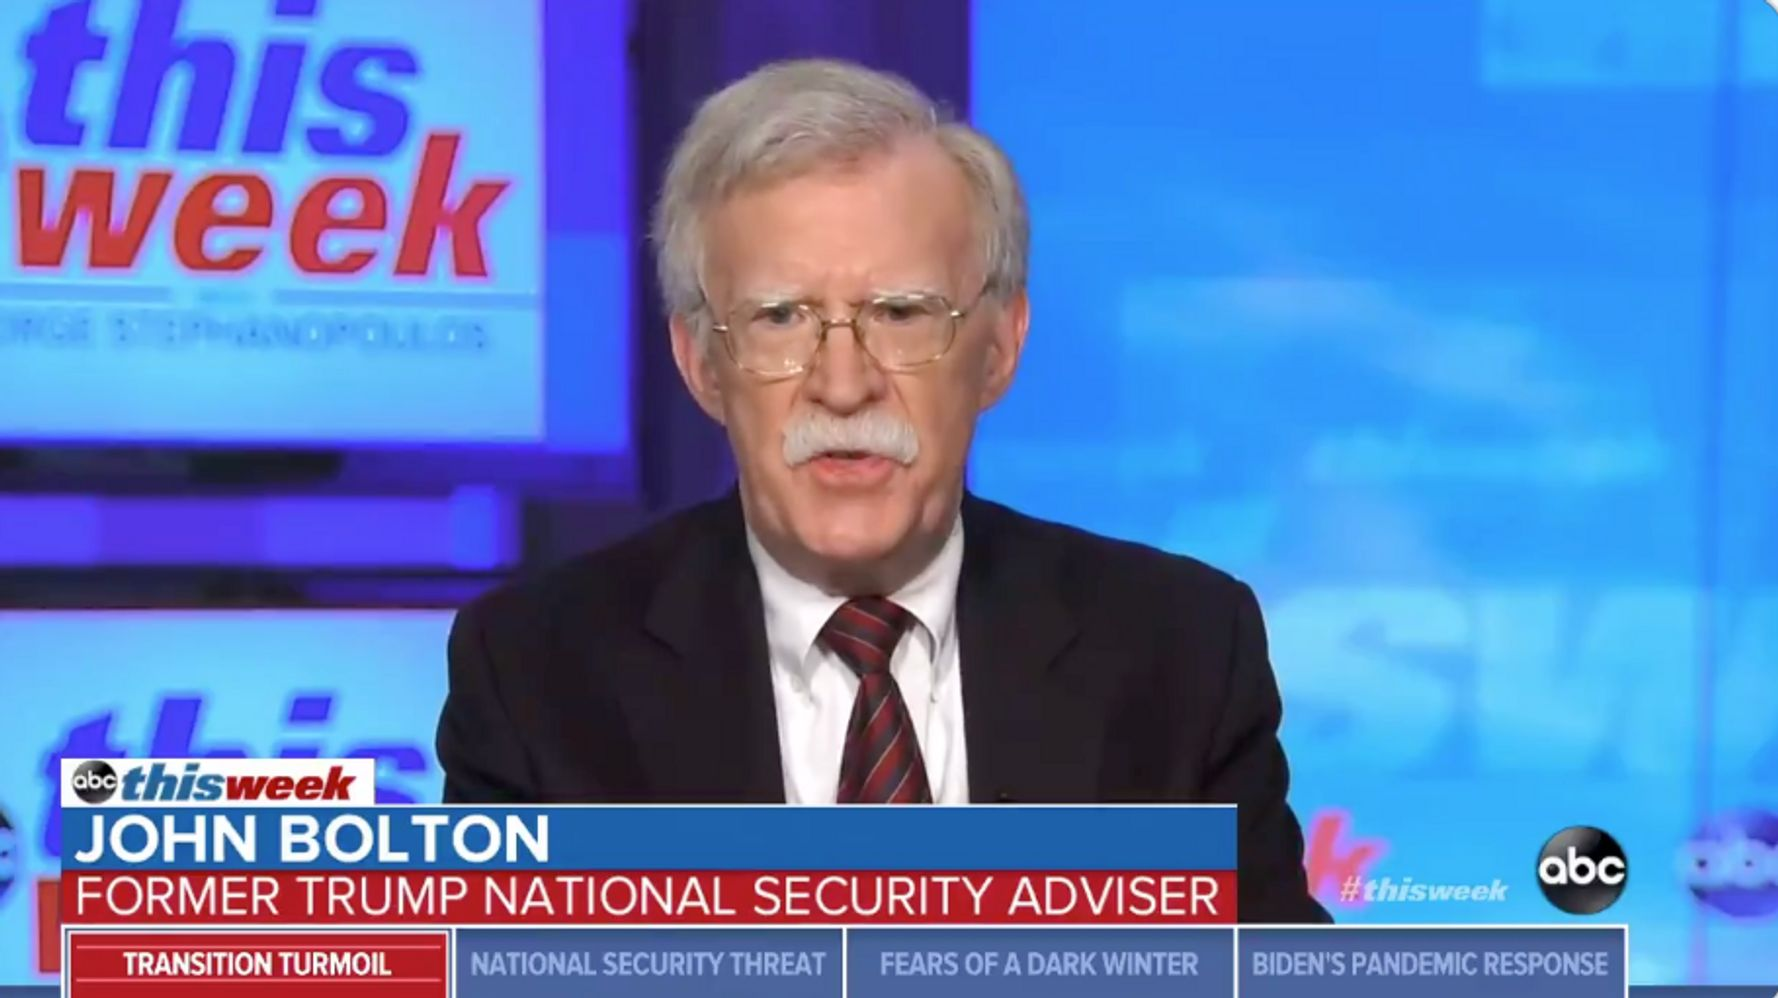 John Bolton Urges Republicans To Publicly Reject Trump's 'Baseless' Voter Fraud Claims